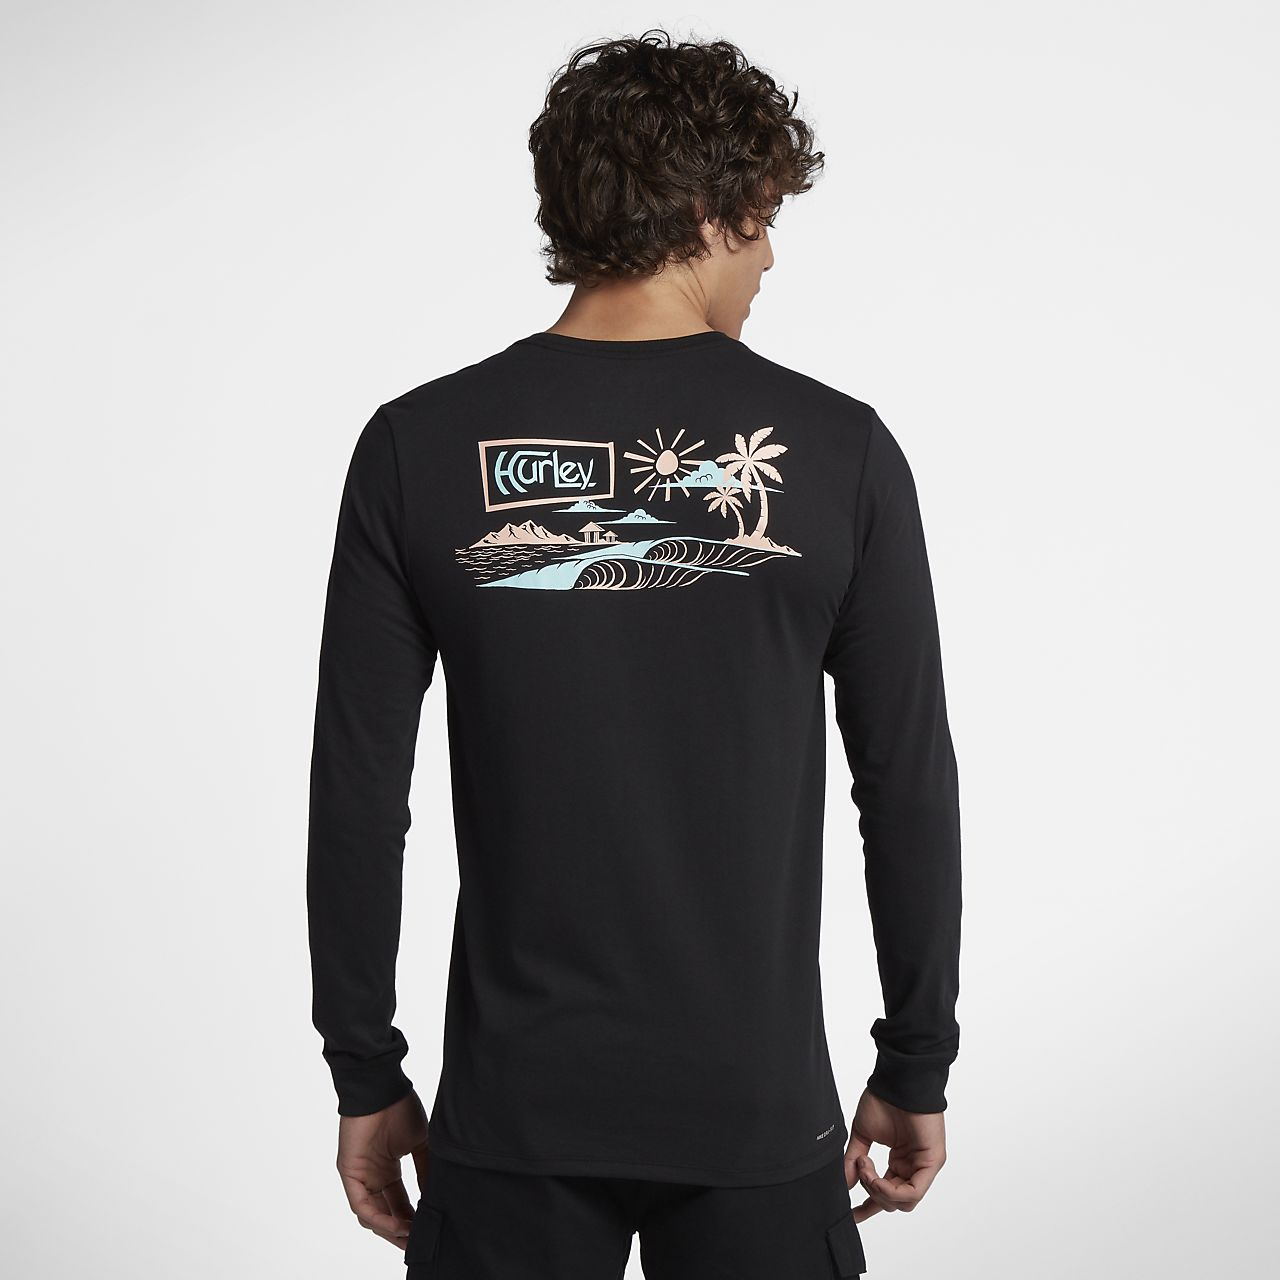 Hurley Dri-FIT Island Style Men's Long Sleeve T-Shirt